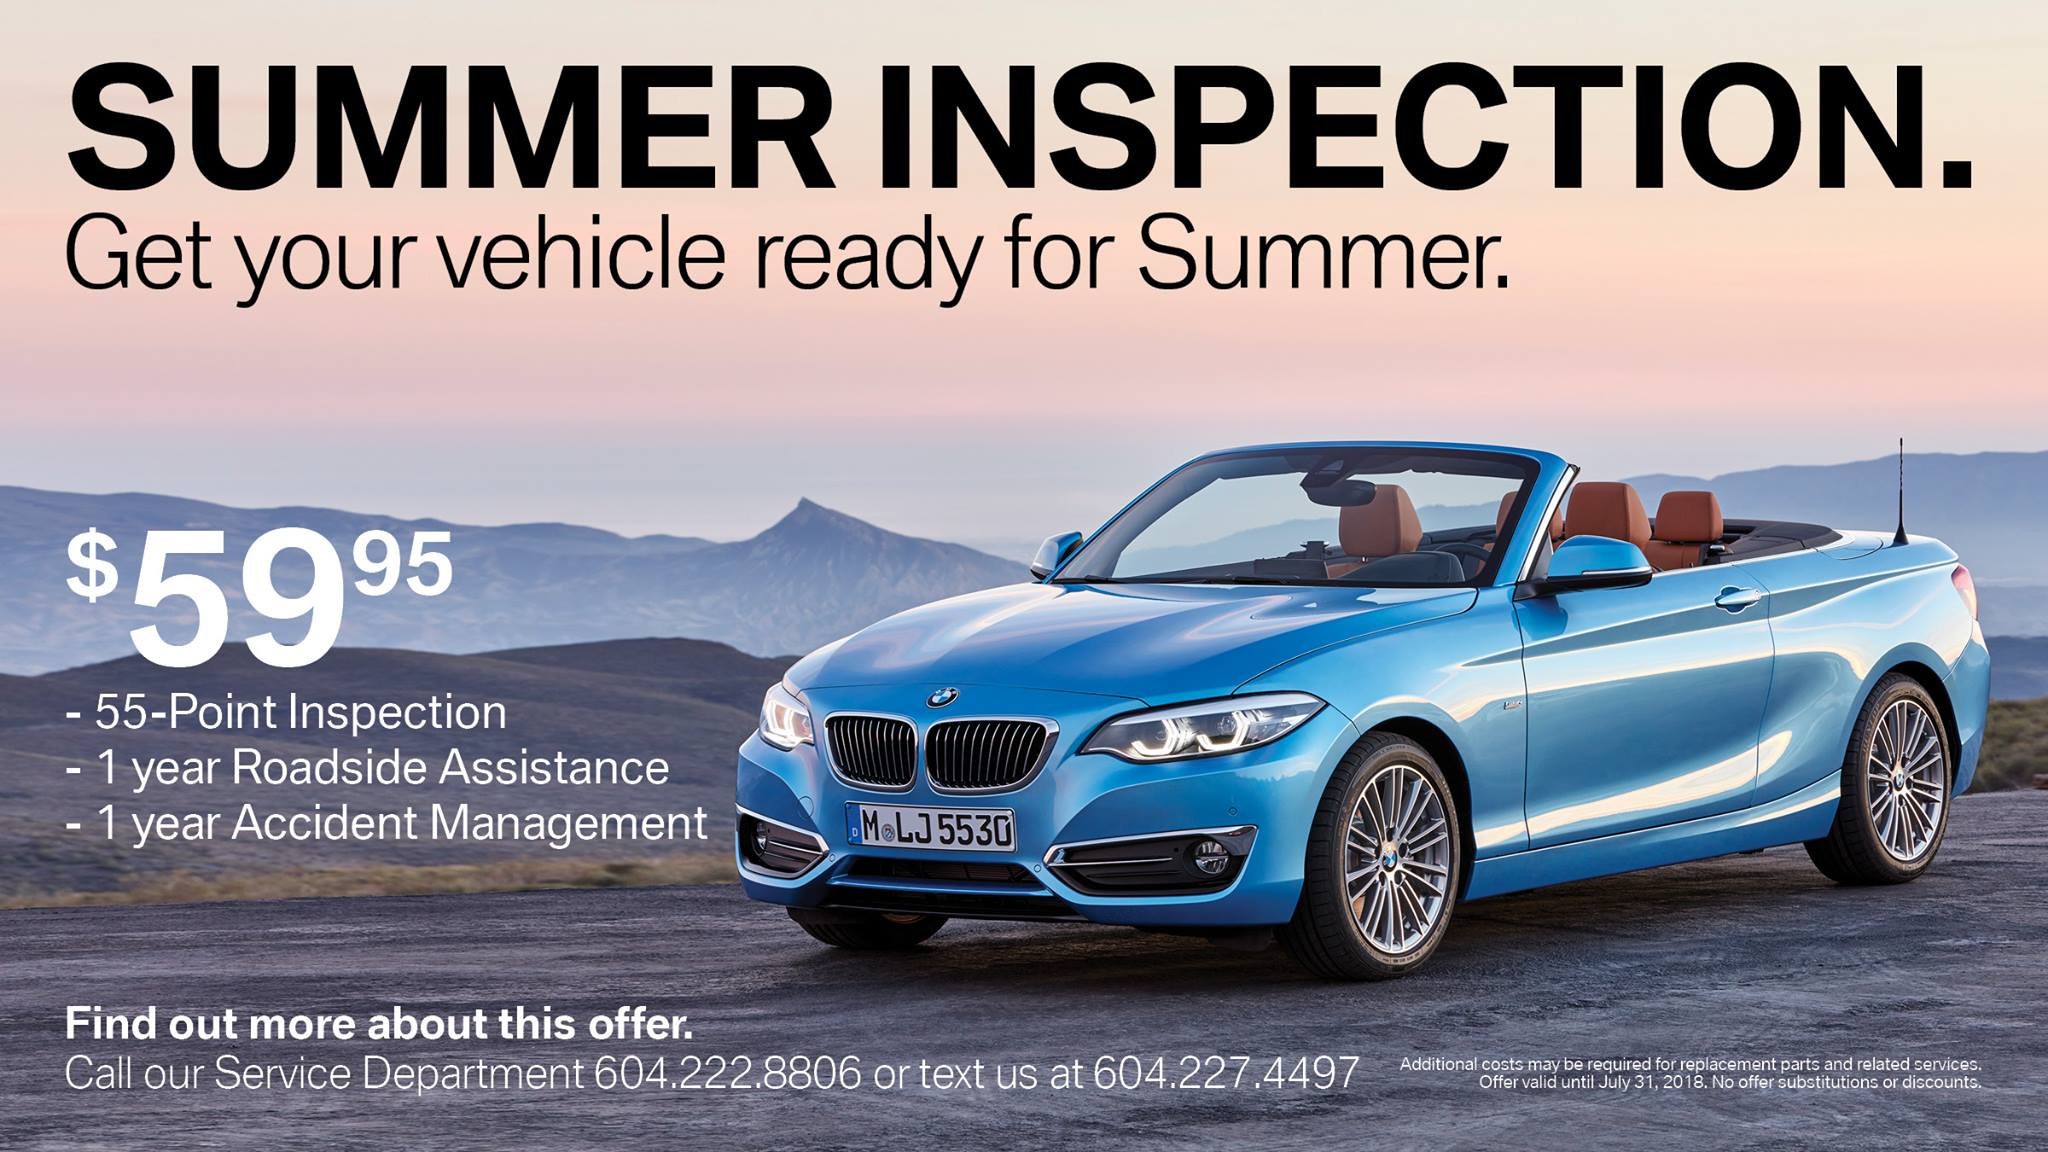 Brian-jessel-bmw-summer-inspection